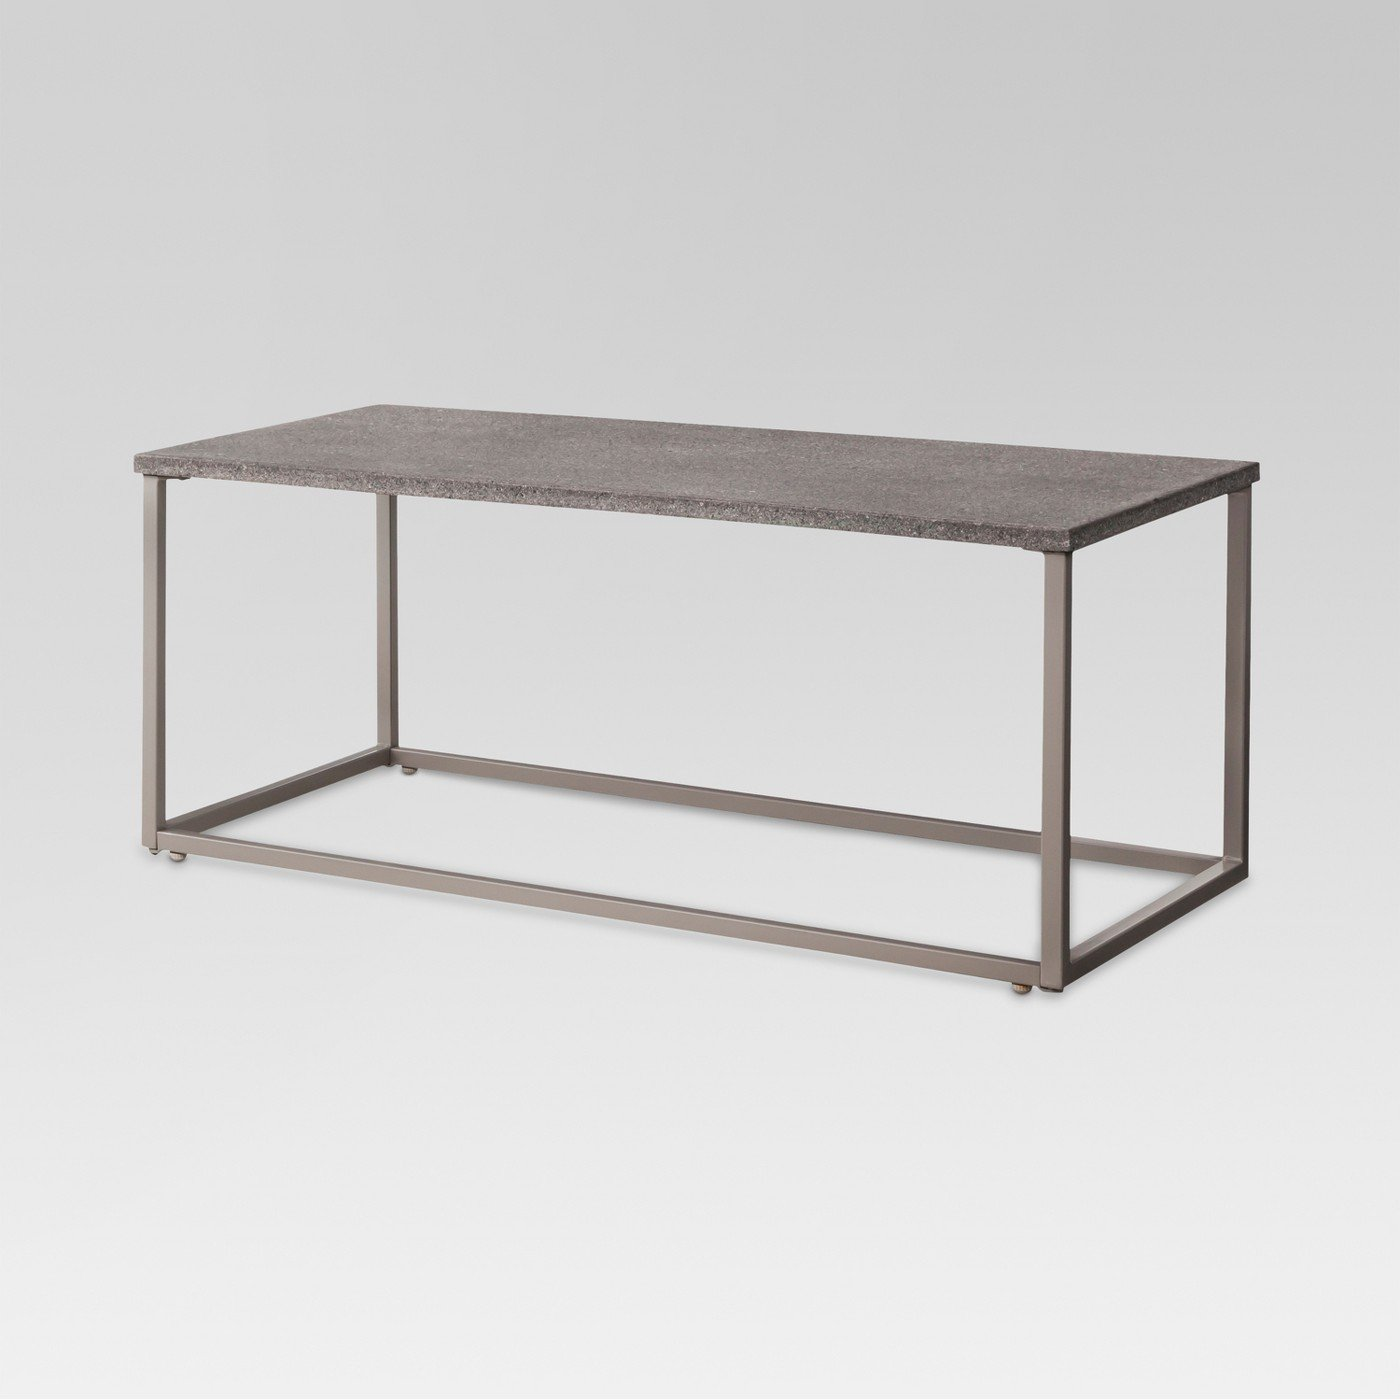 Outdoor coffee table from Target